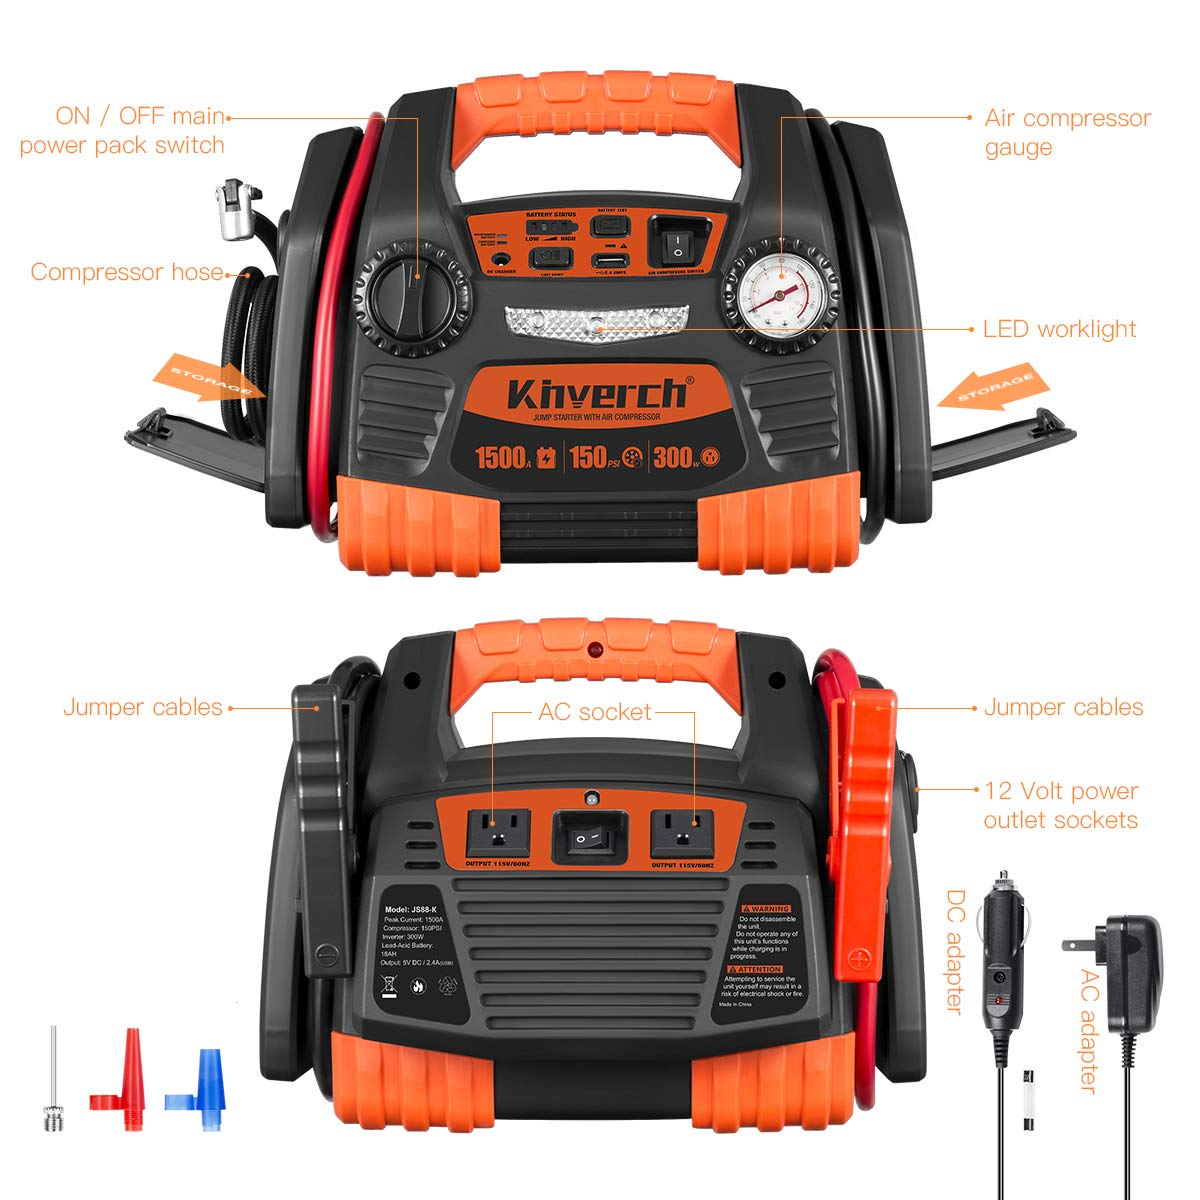 Kinverch Portable Power Station Jump Starter 1500 Peak/750 Instant Amps with 300W Inverter,150 PSI Air Compressor by kinverch (Image #3)